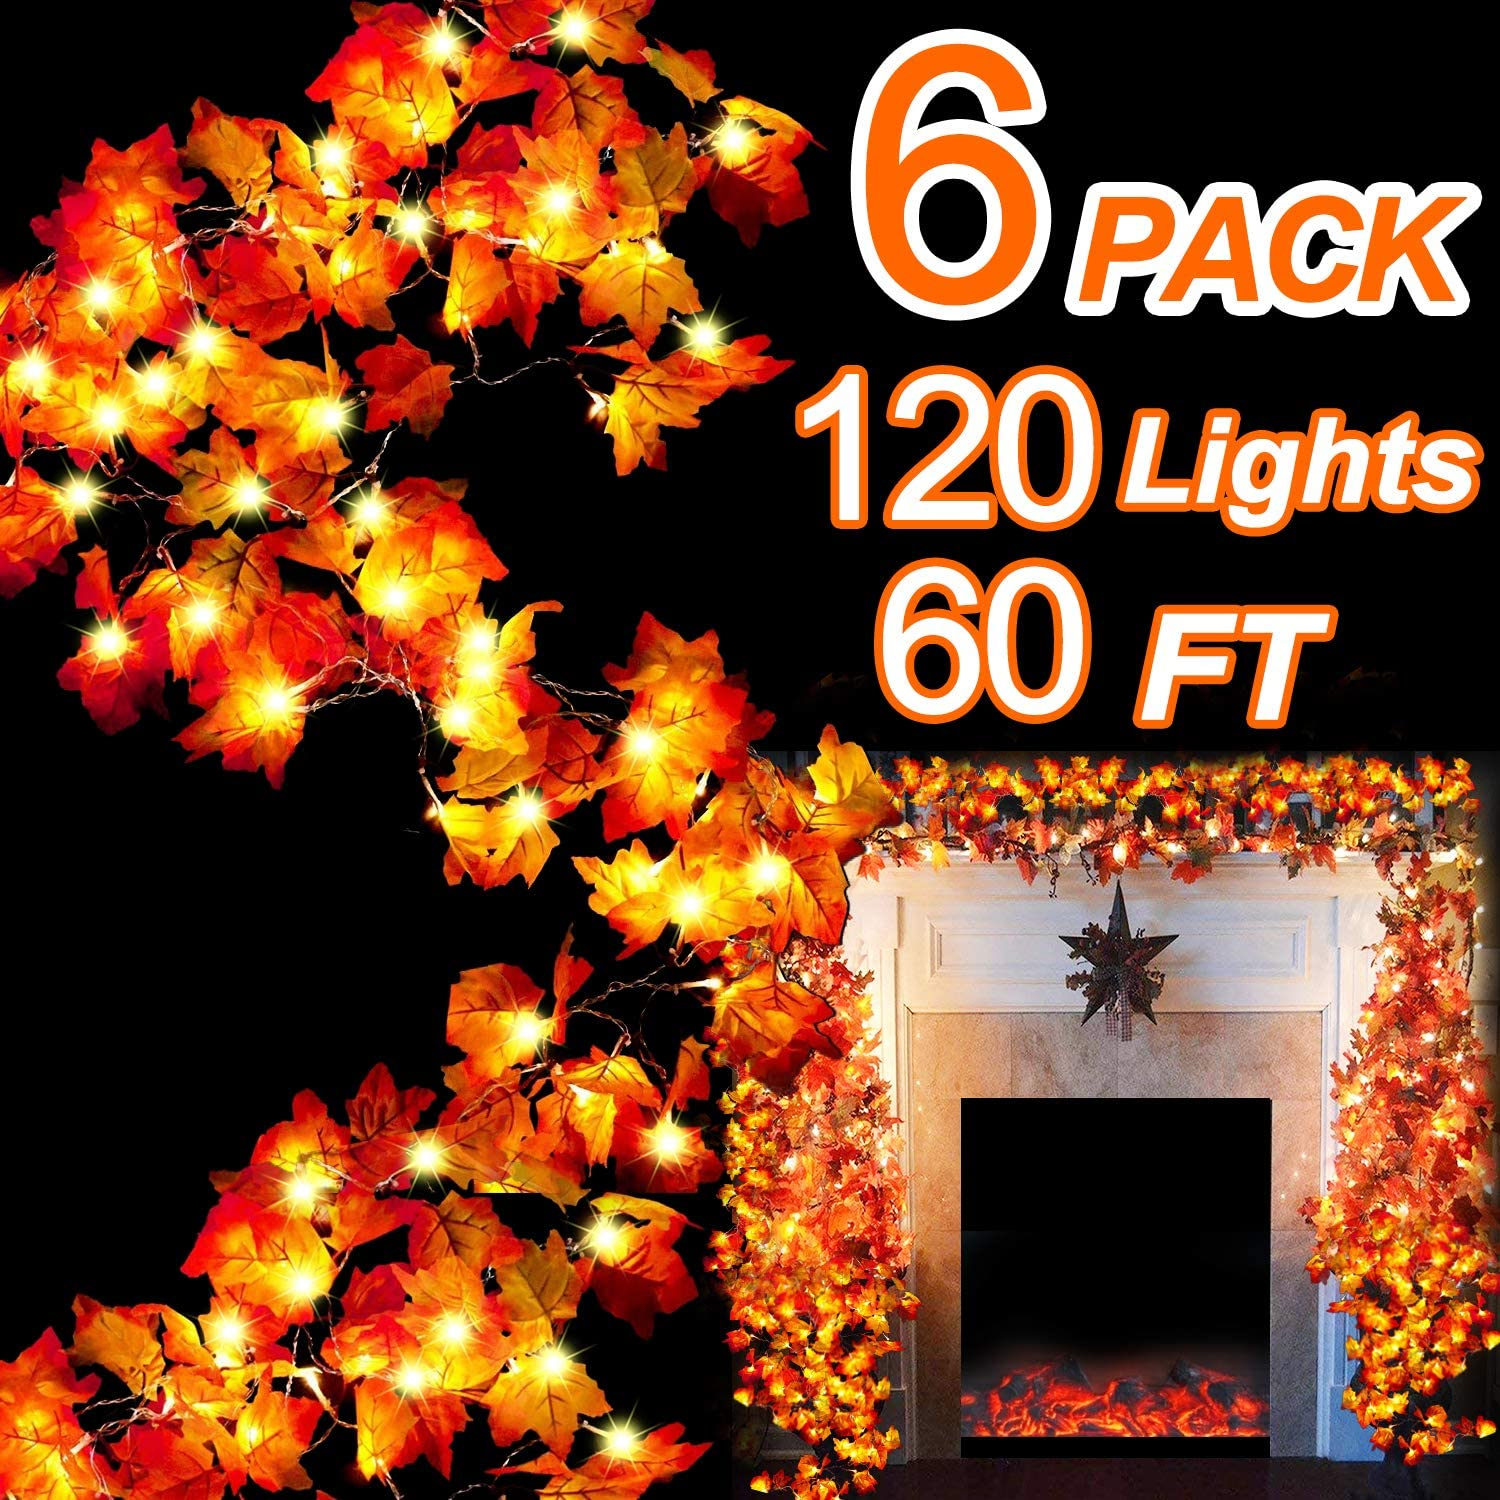 60Ft/120 LED Maple Leaves Garland String Light, Waterproof Fall Garland Lights for Indoor Outdoor Thanksgiving Decor Halloween Party Decorations Autumn Garland (A.6 Pack Maple Leaf Light G)